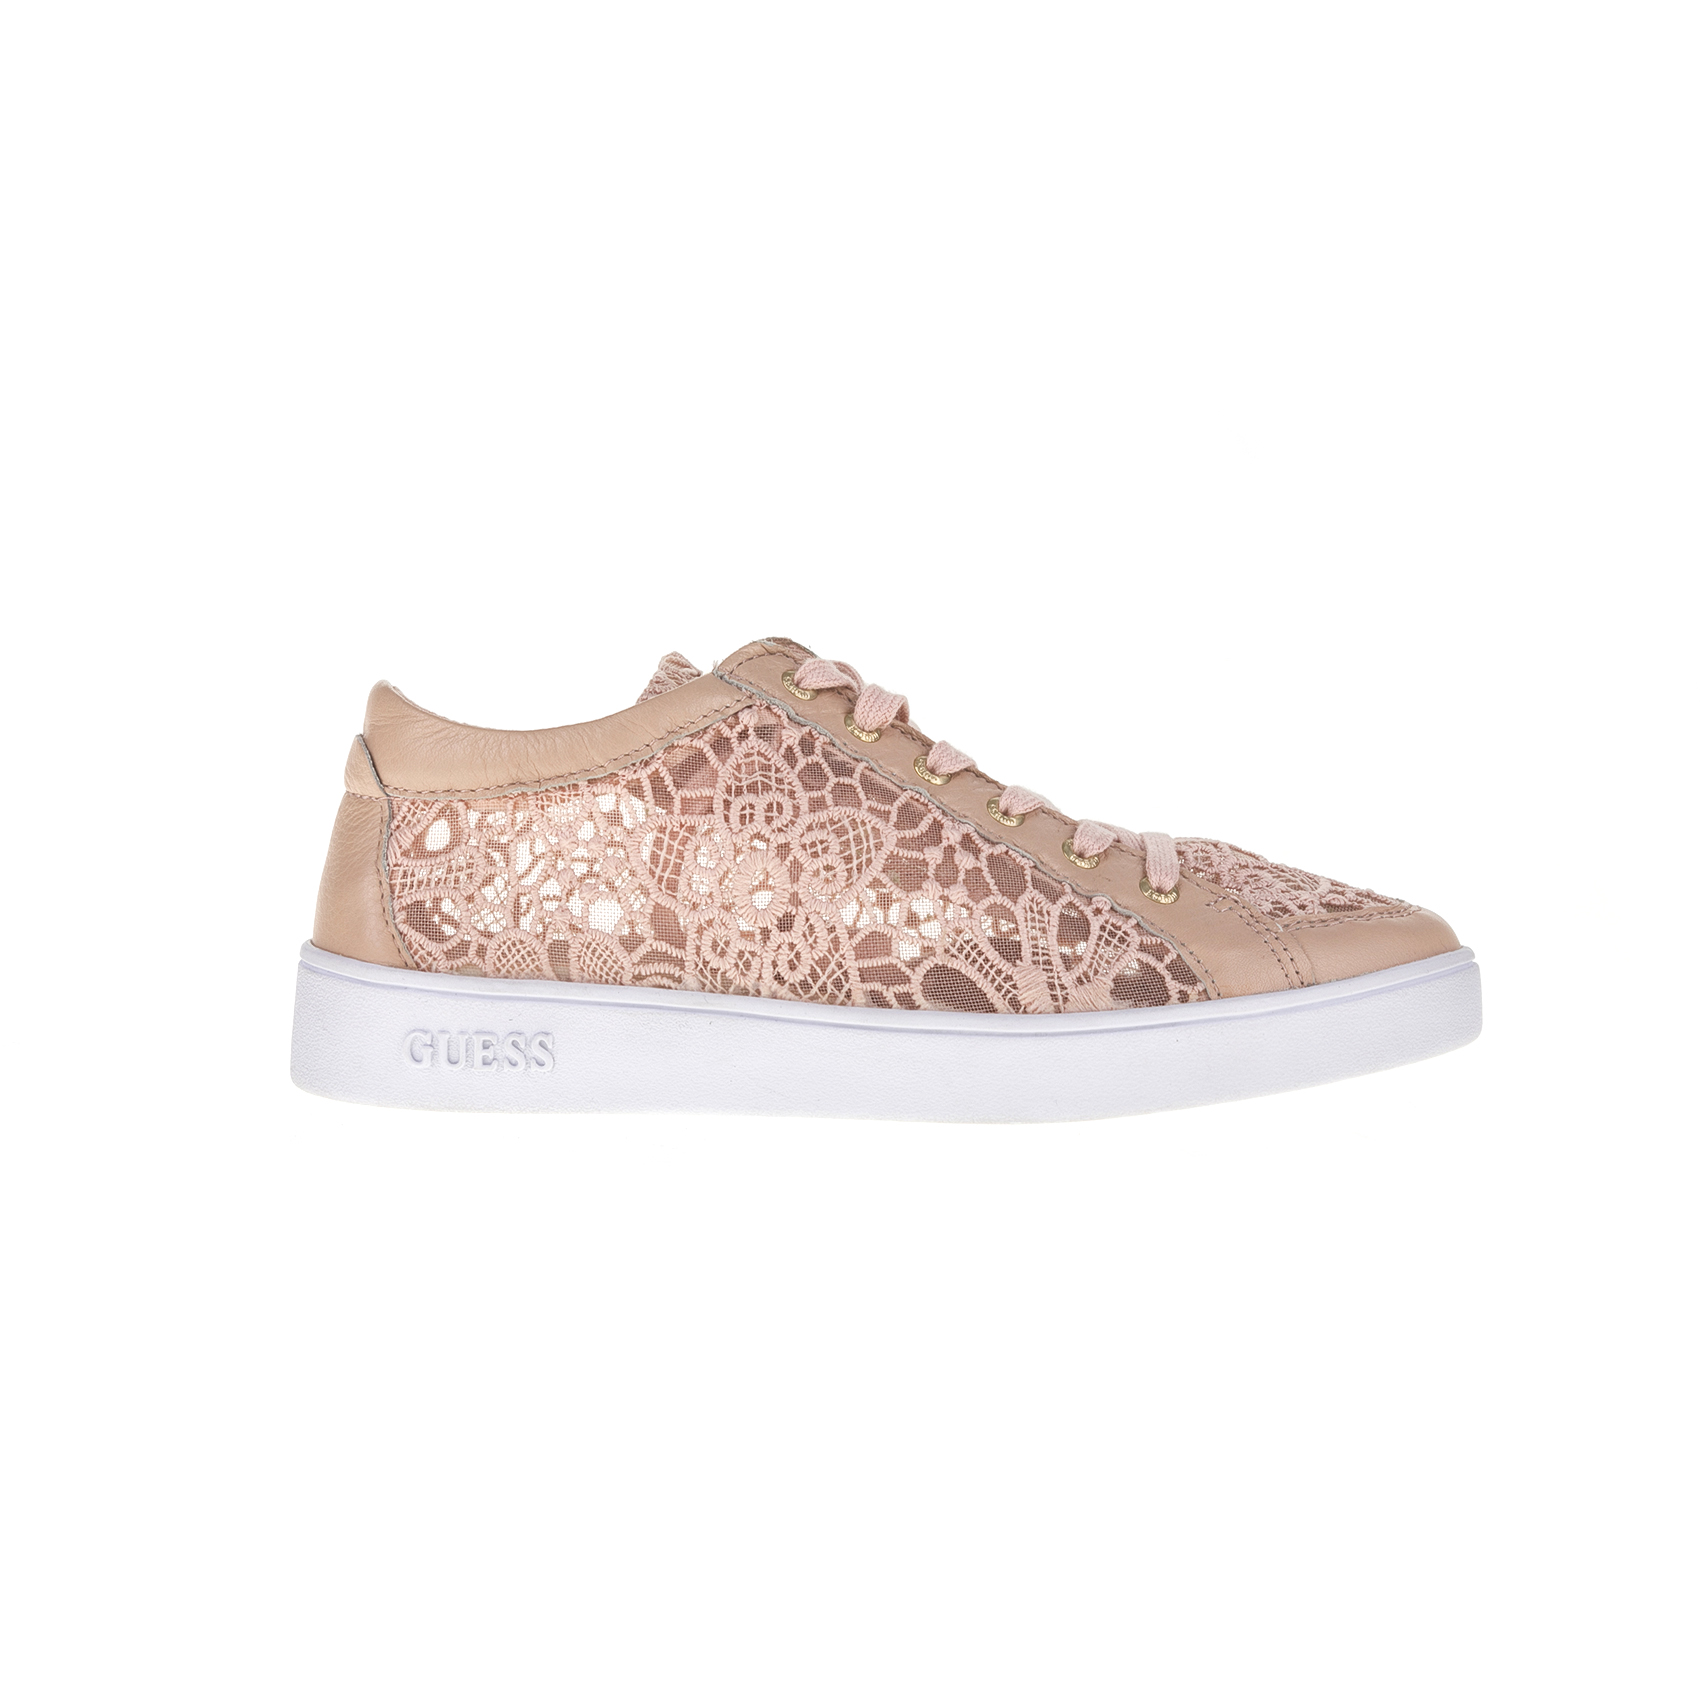 GUESS – Γυναικεία sneakers GUESS ροζ